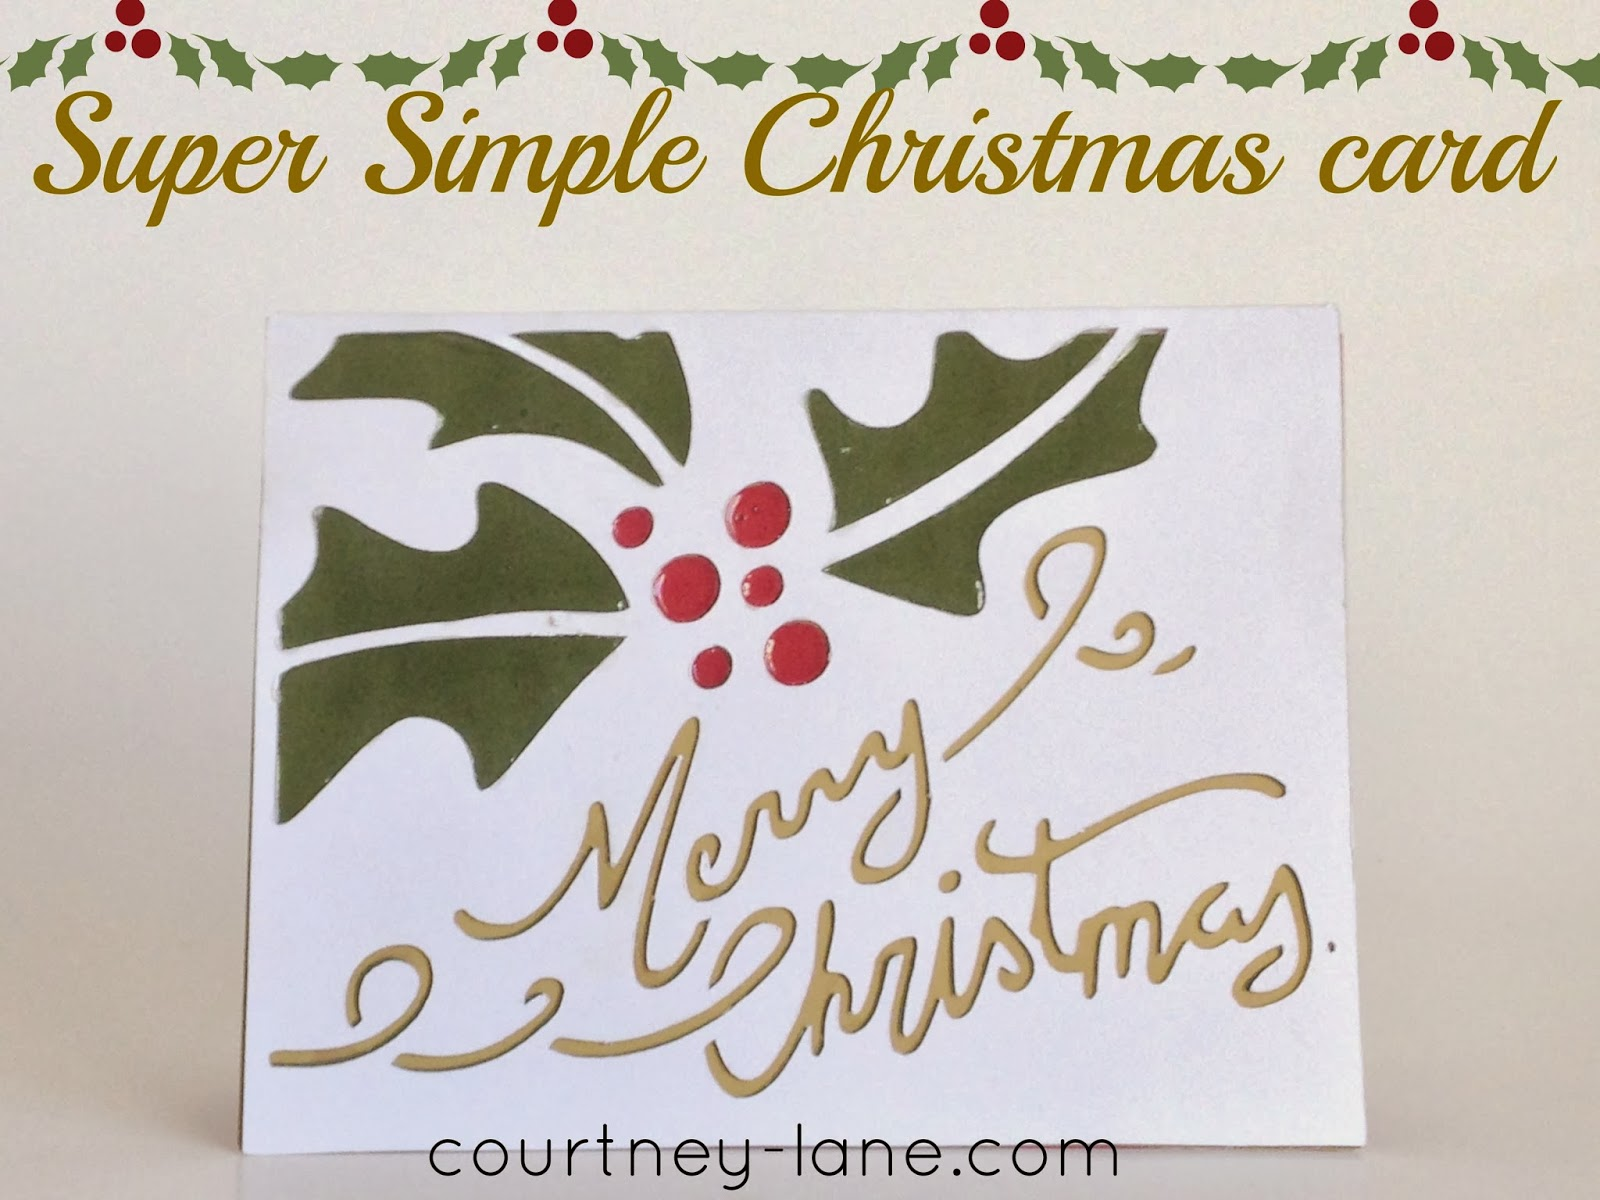 Courtney Lane Designs: Super Simple Holly Christmas card